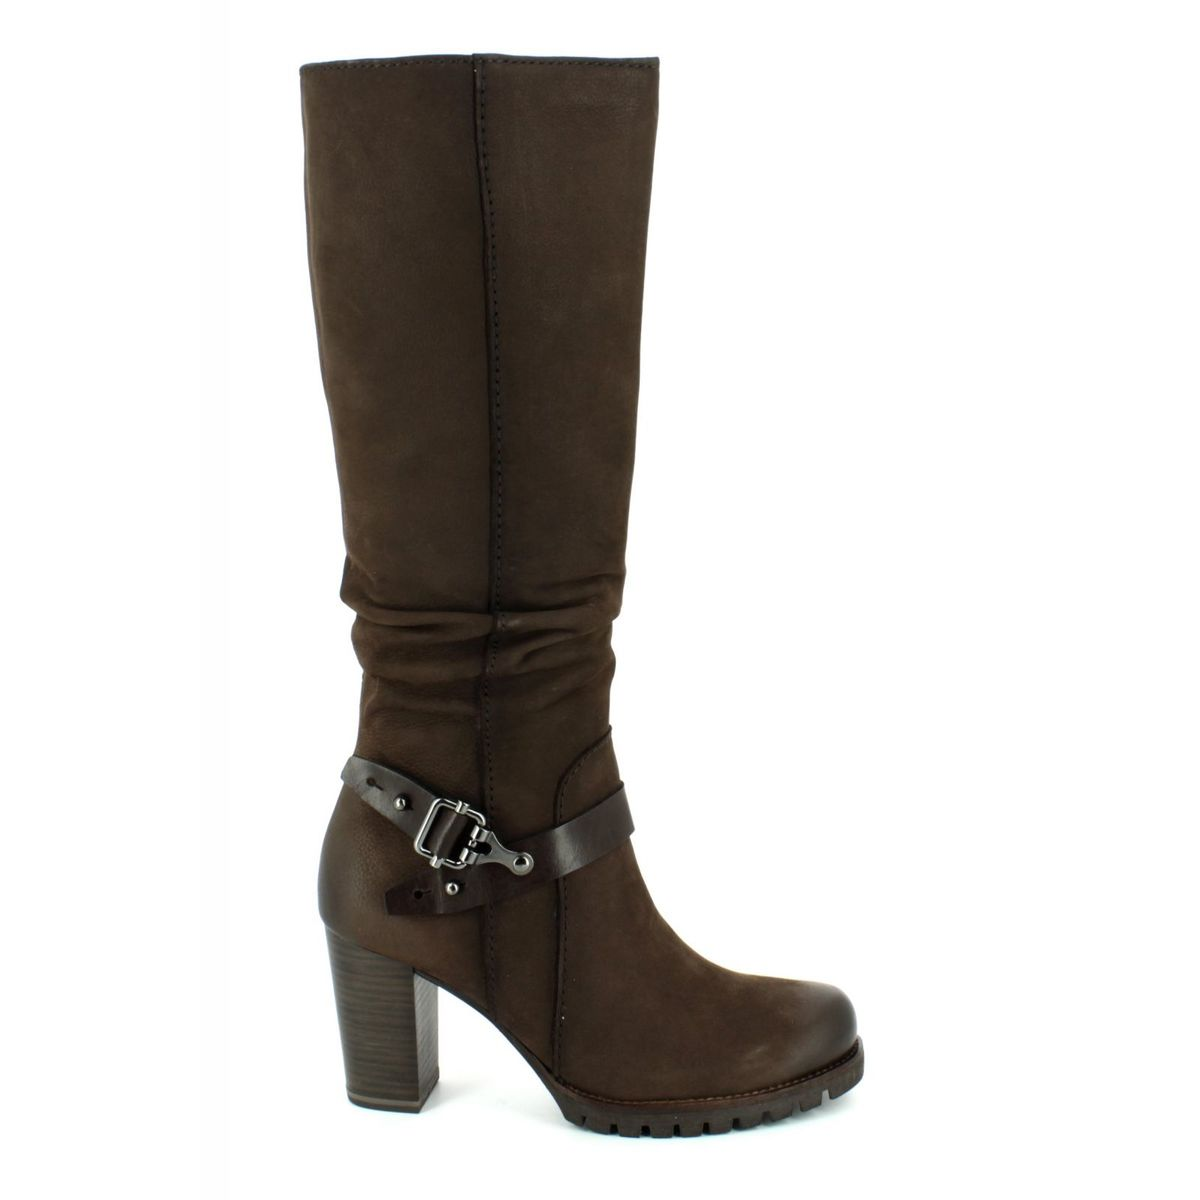 10fc7780c31 Marco Tozzi Knee-high Boots - Brown - 25614 325 BULLA